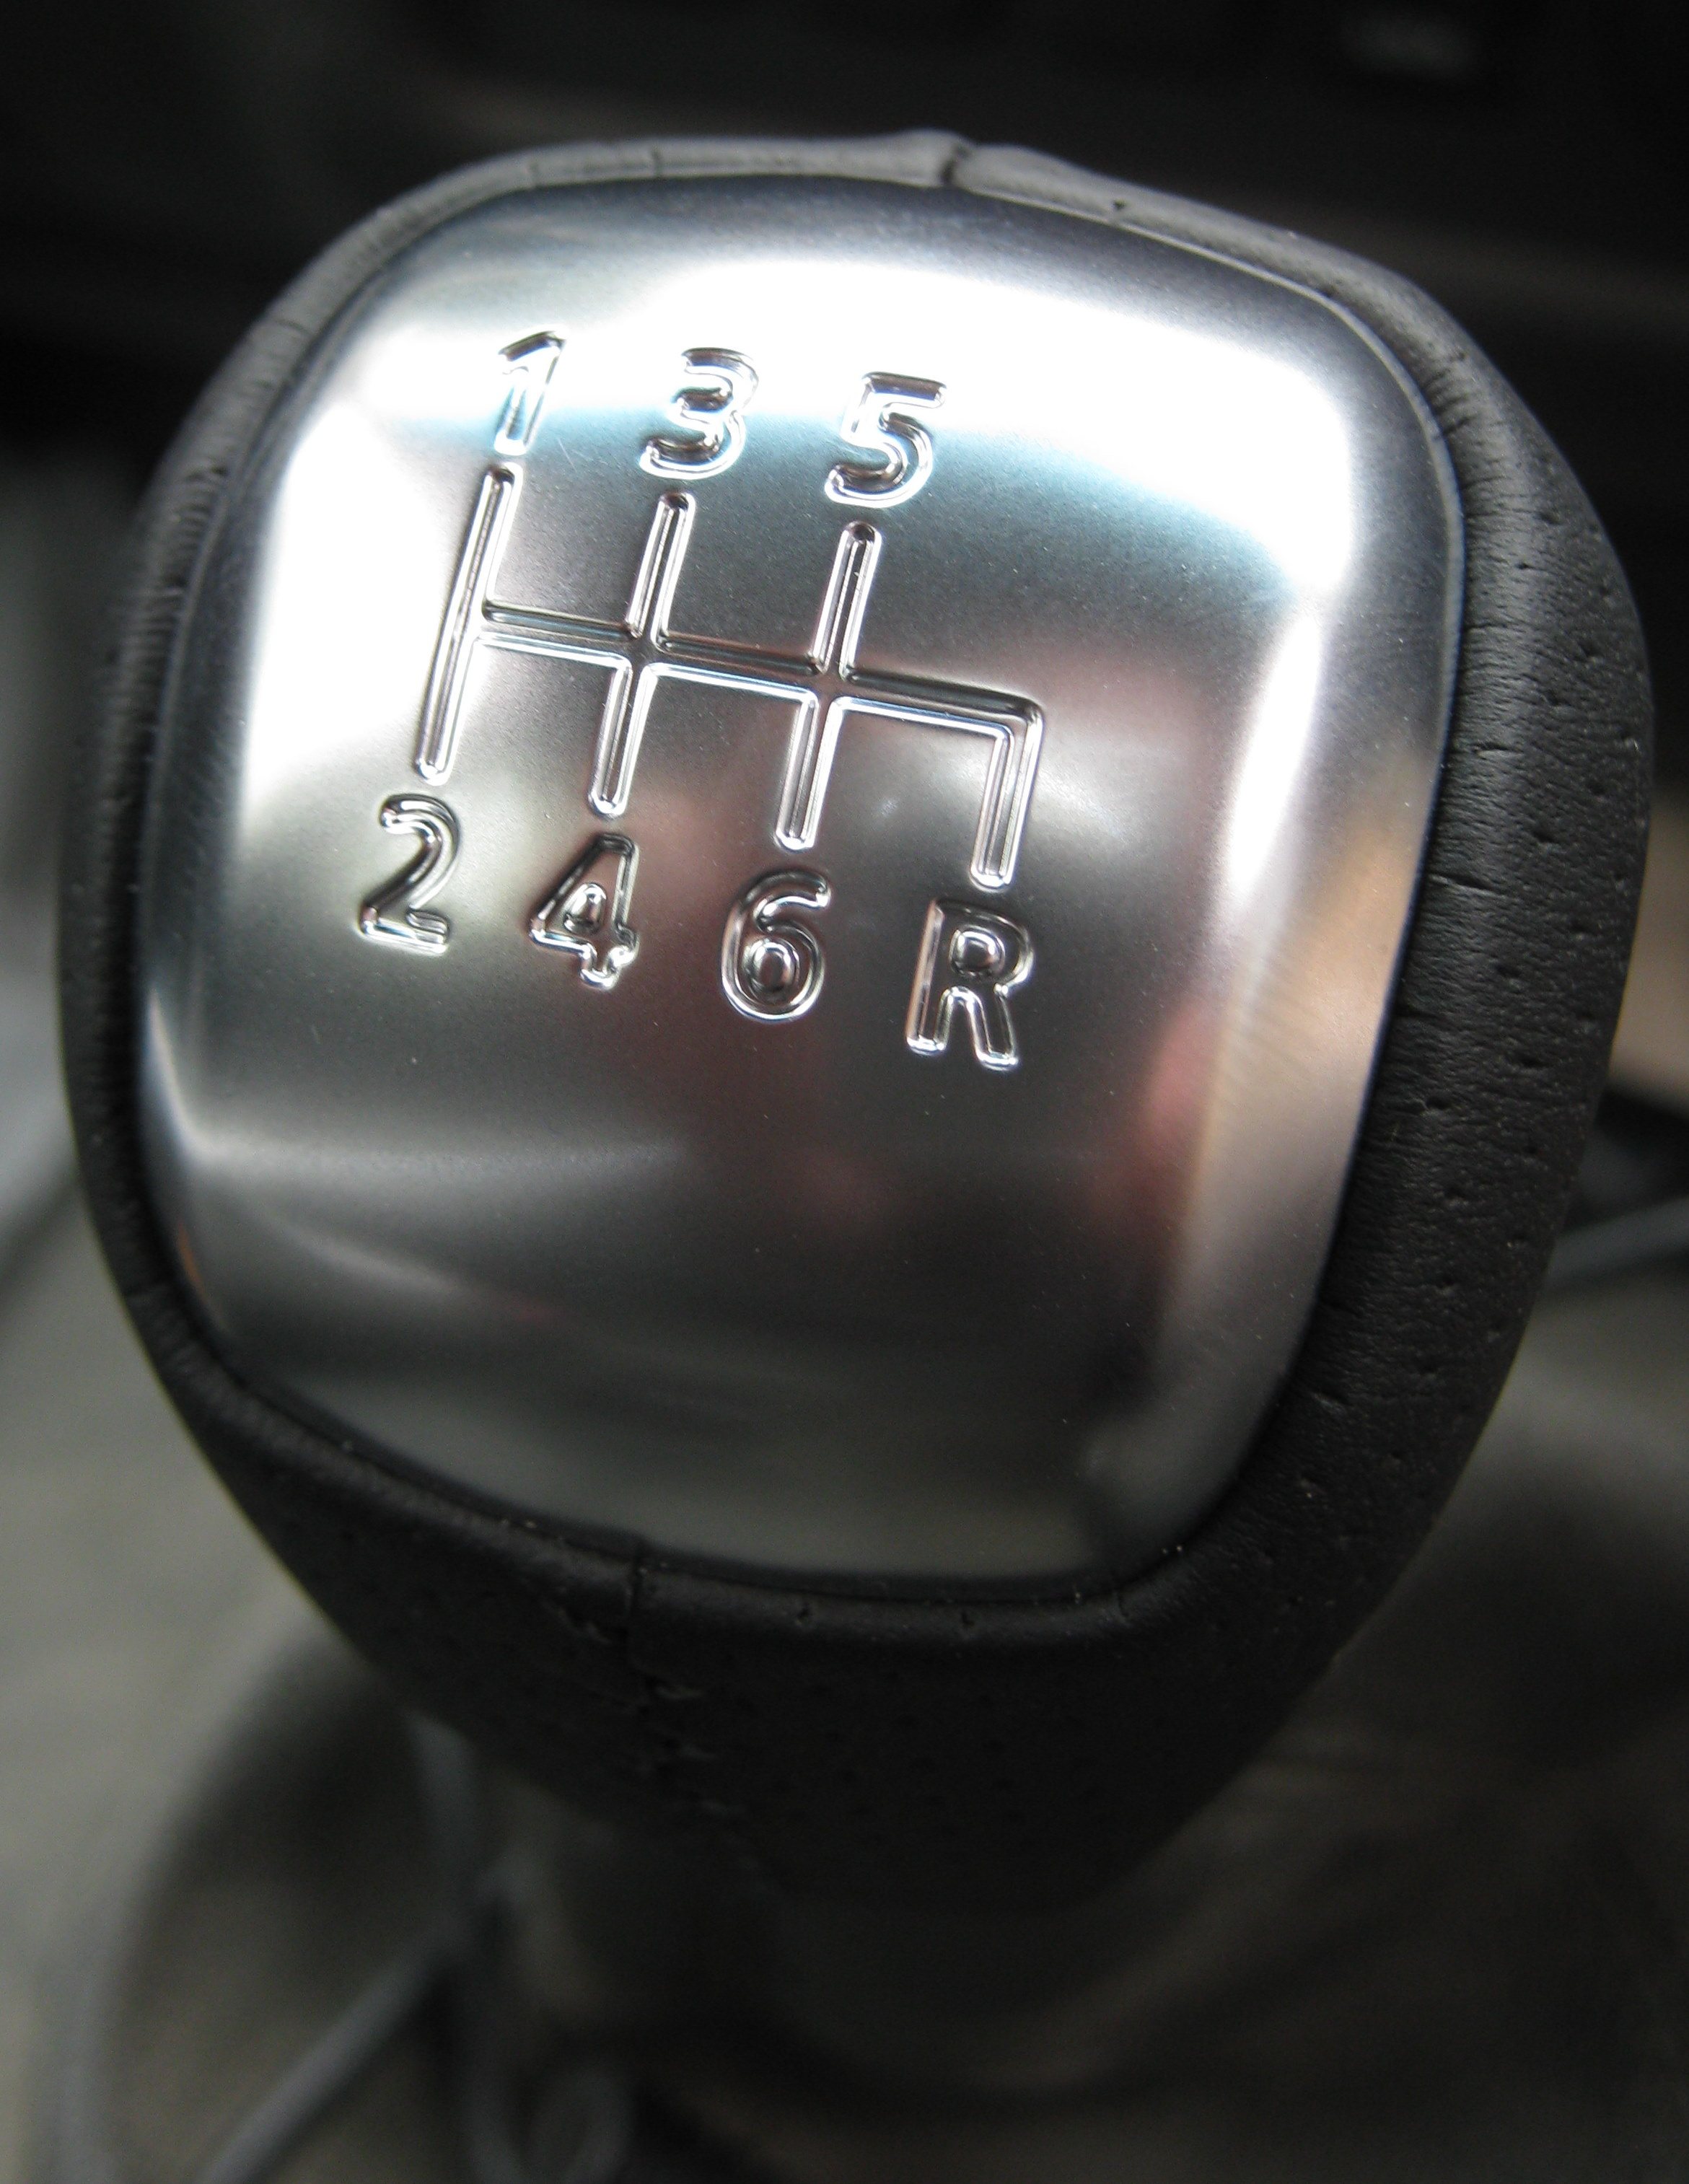 Leather Gear Knob For Nissan Pathfinder 6 Speed Manual